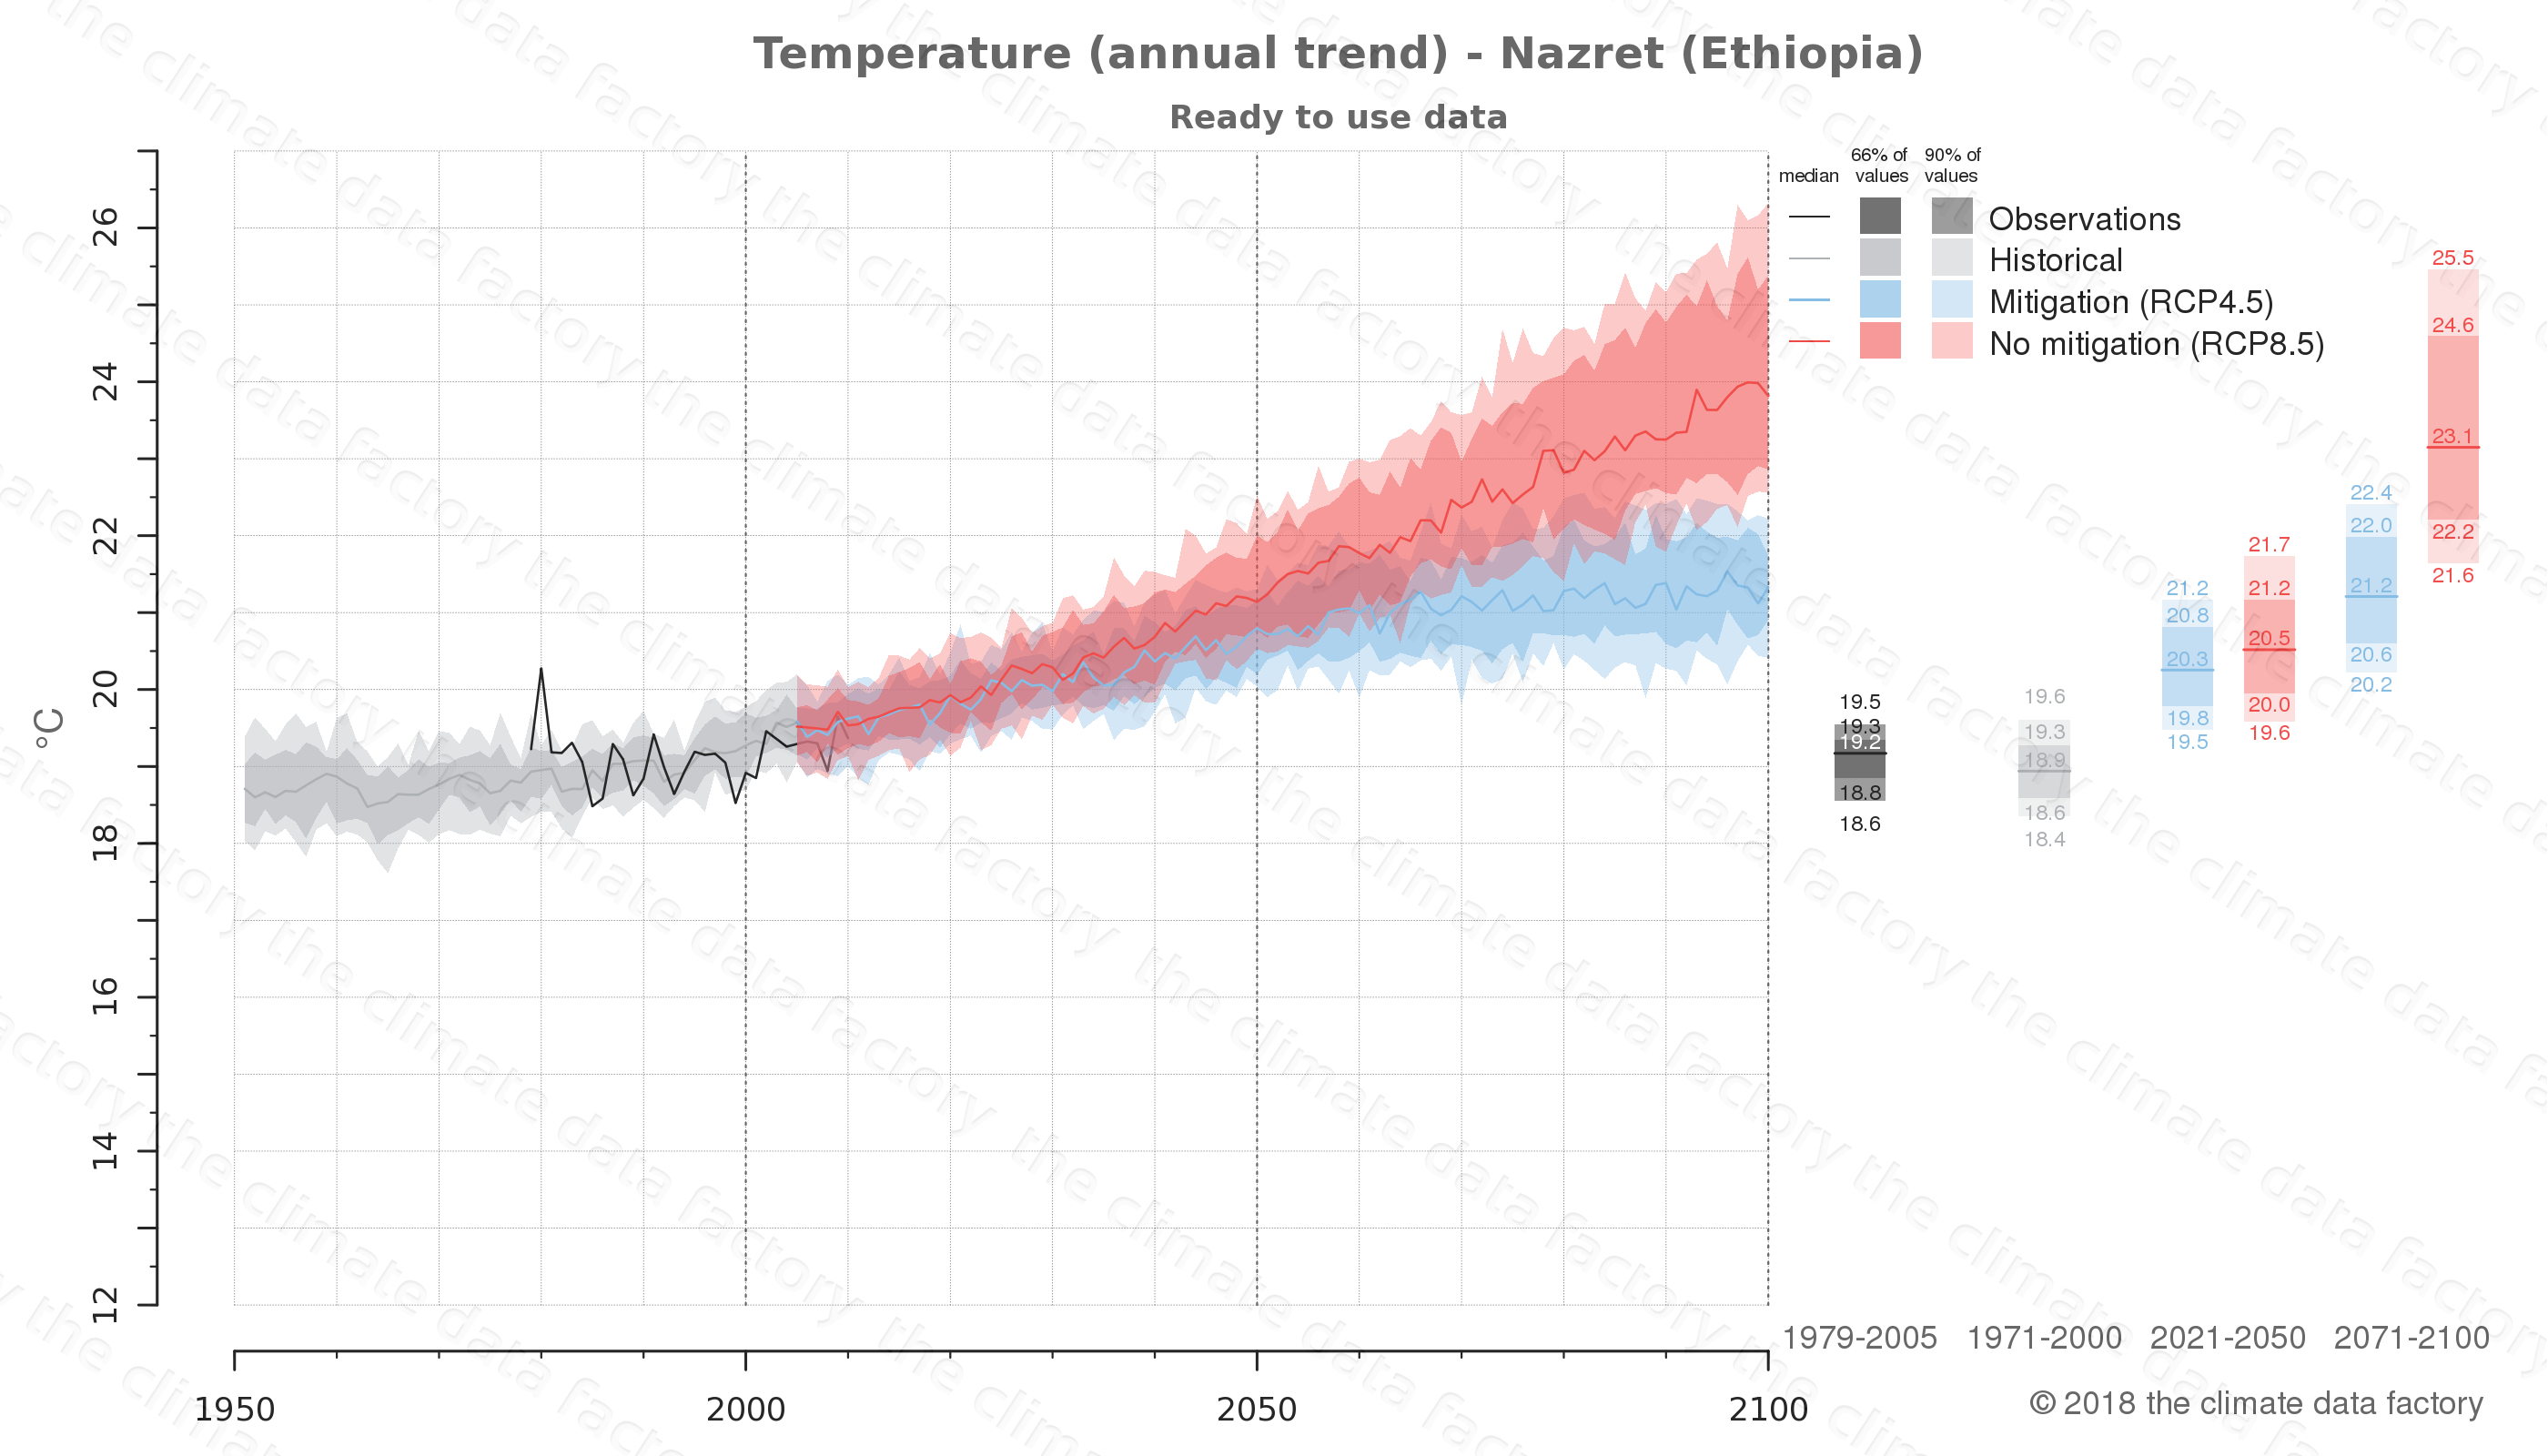 climate change data policy adaptation climate graph city data temperature nazret ethiopia